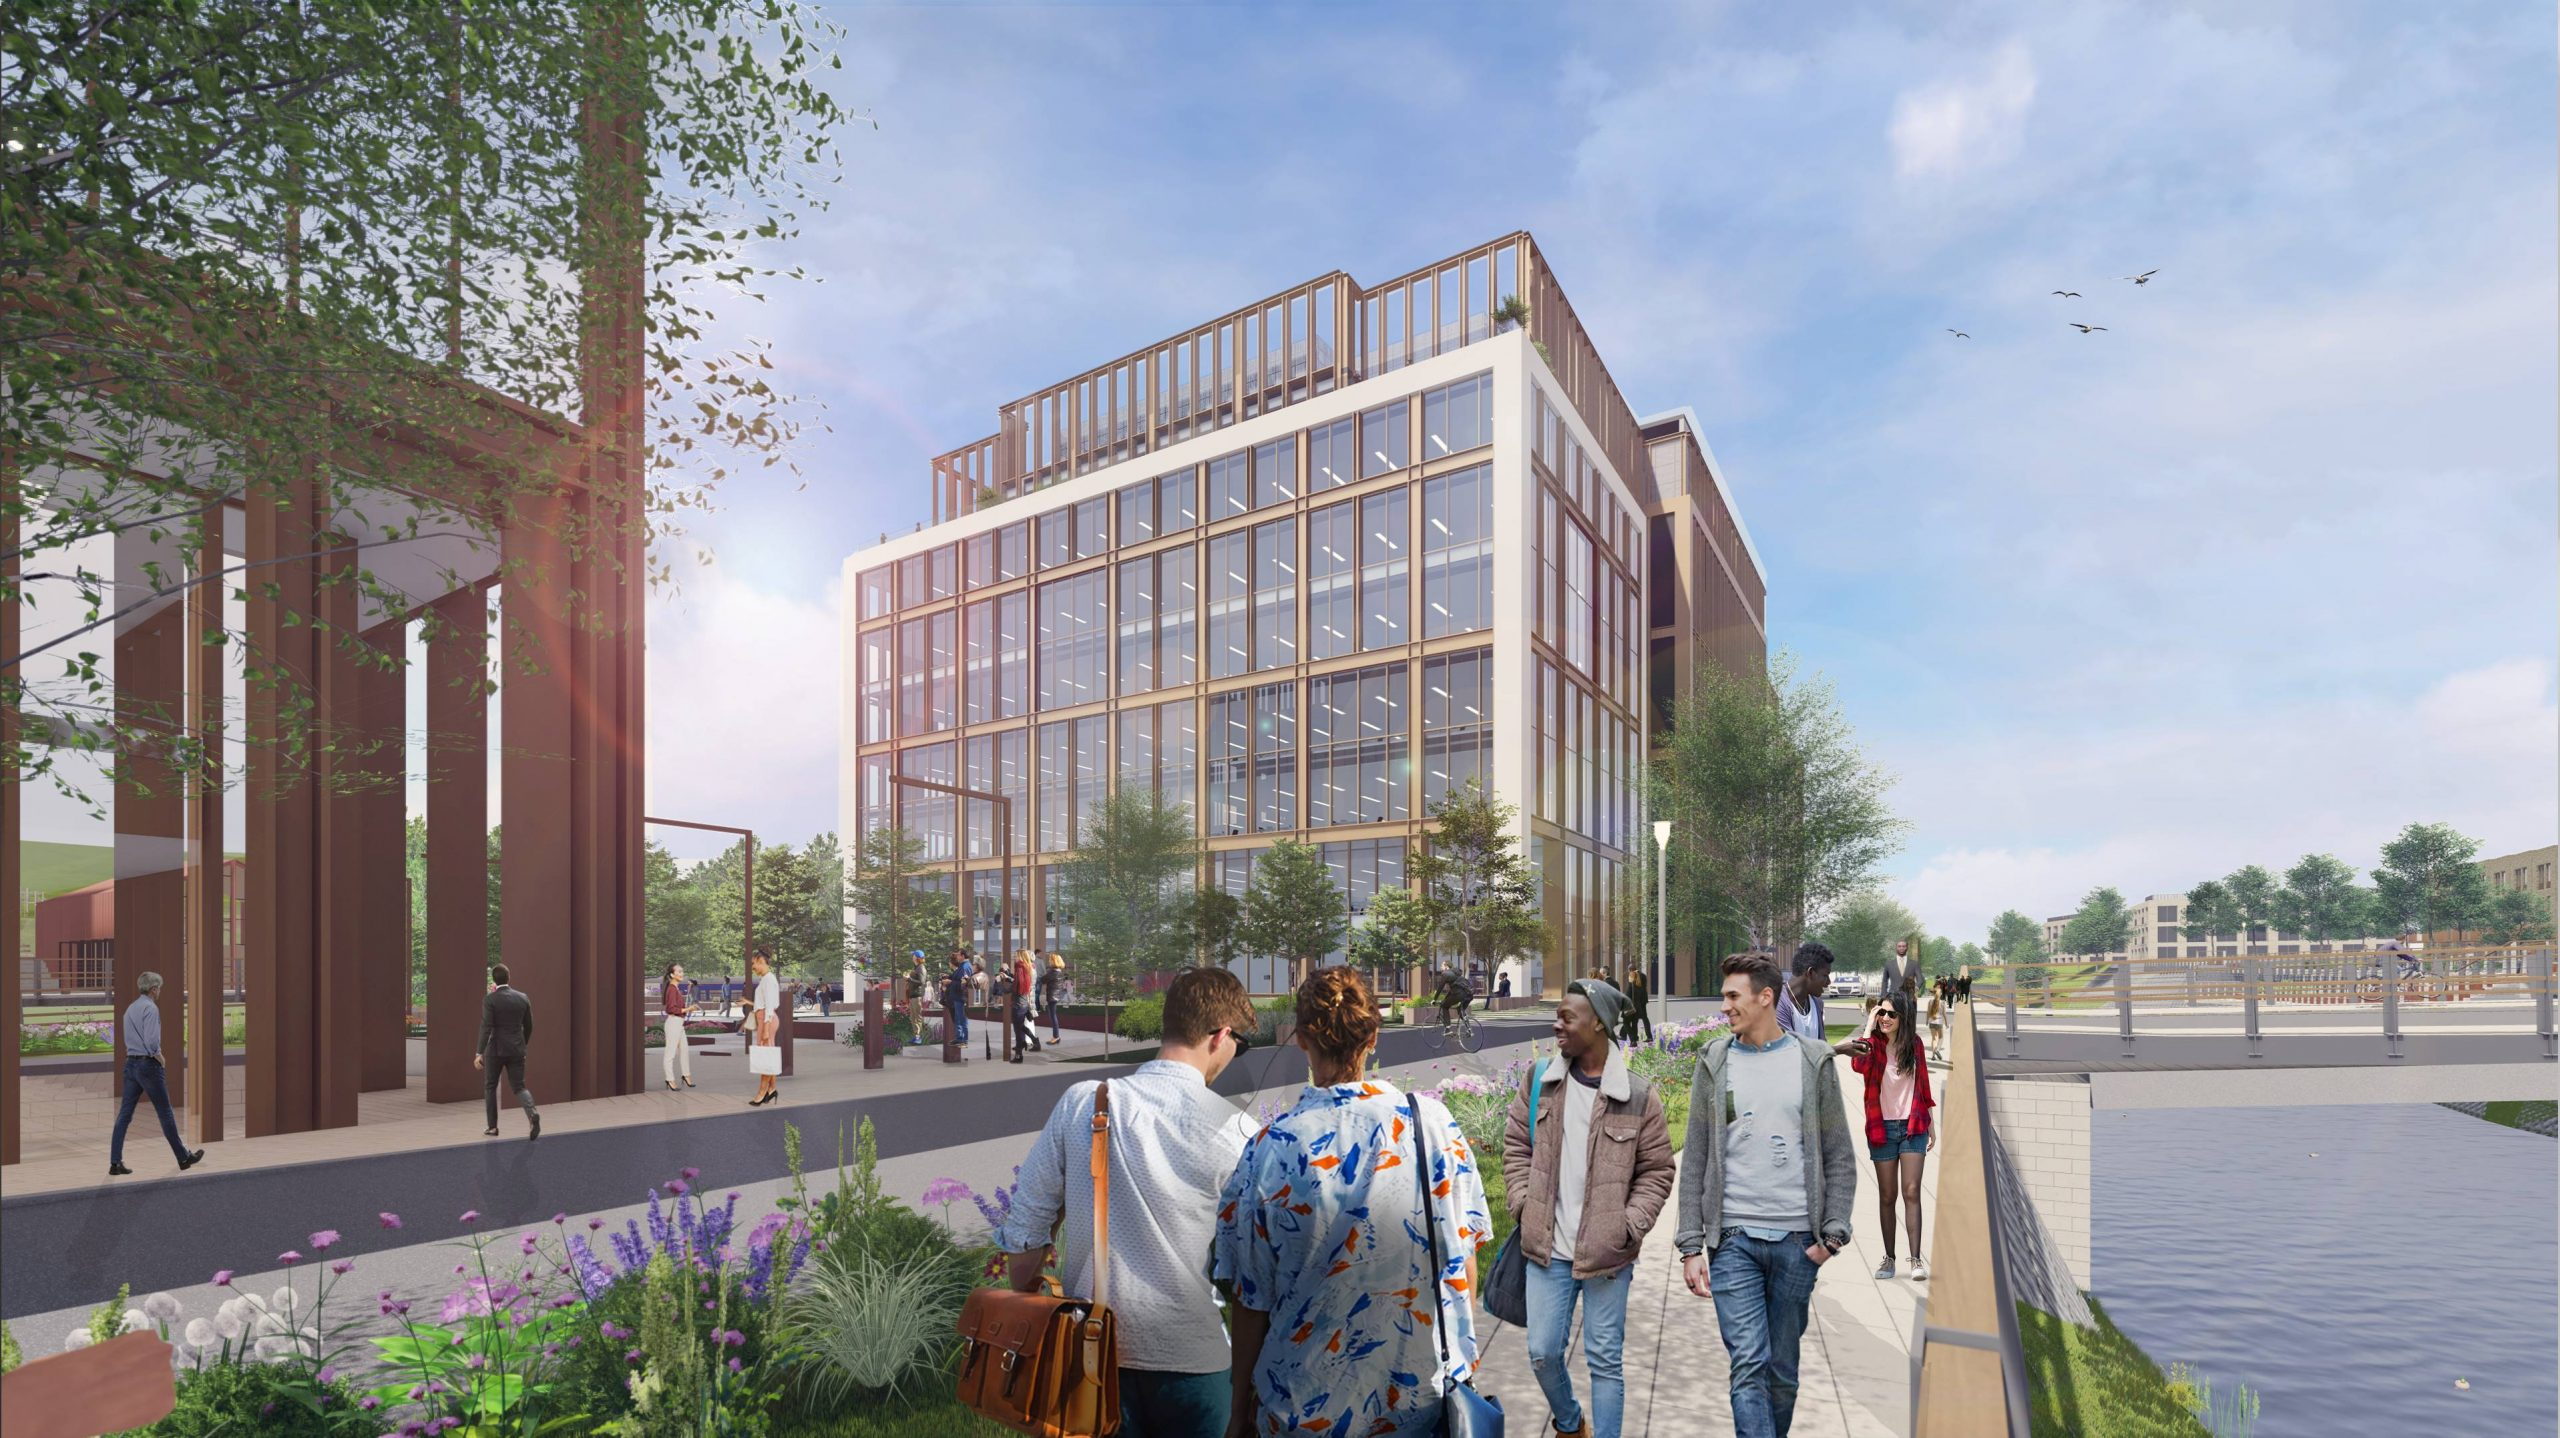 PLANNING GRANTED FOR NEXT PHASE OF COMMERCIAL DEVELOPMENT AT KIRKSTALL FORGE